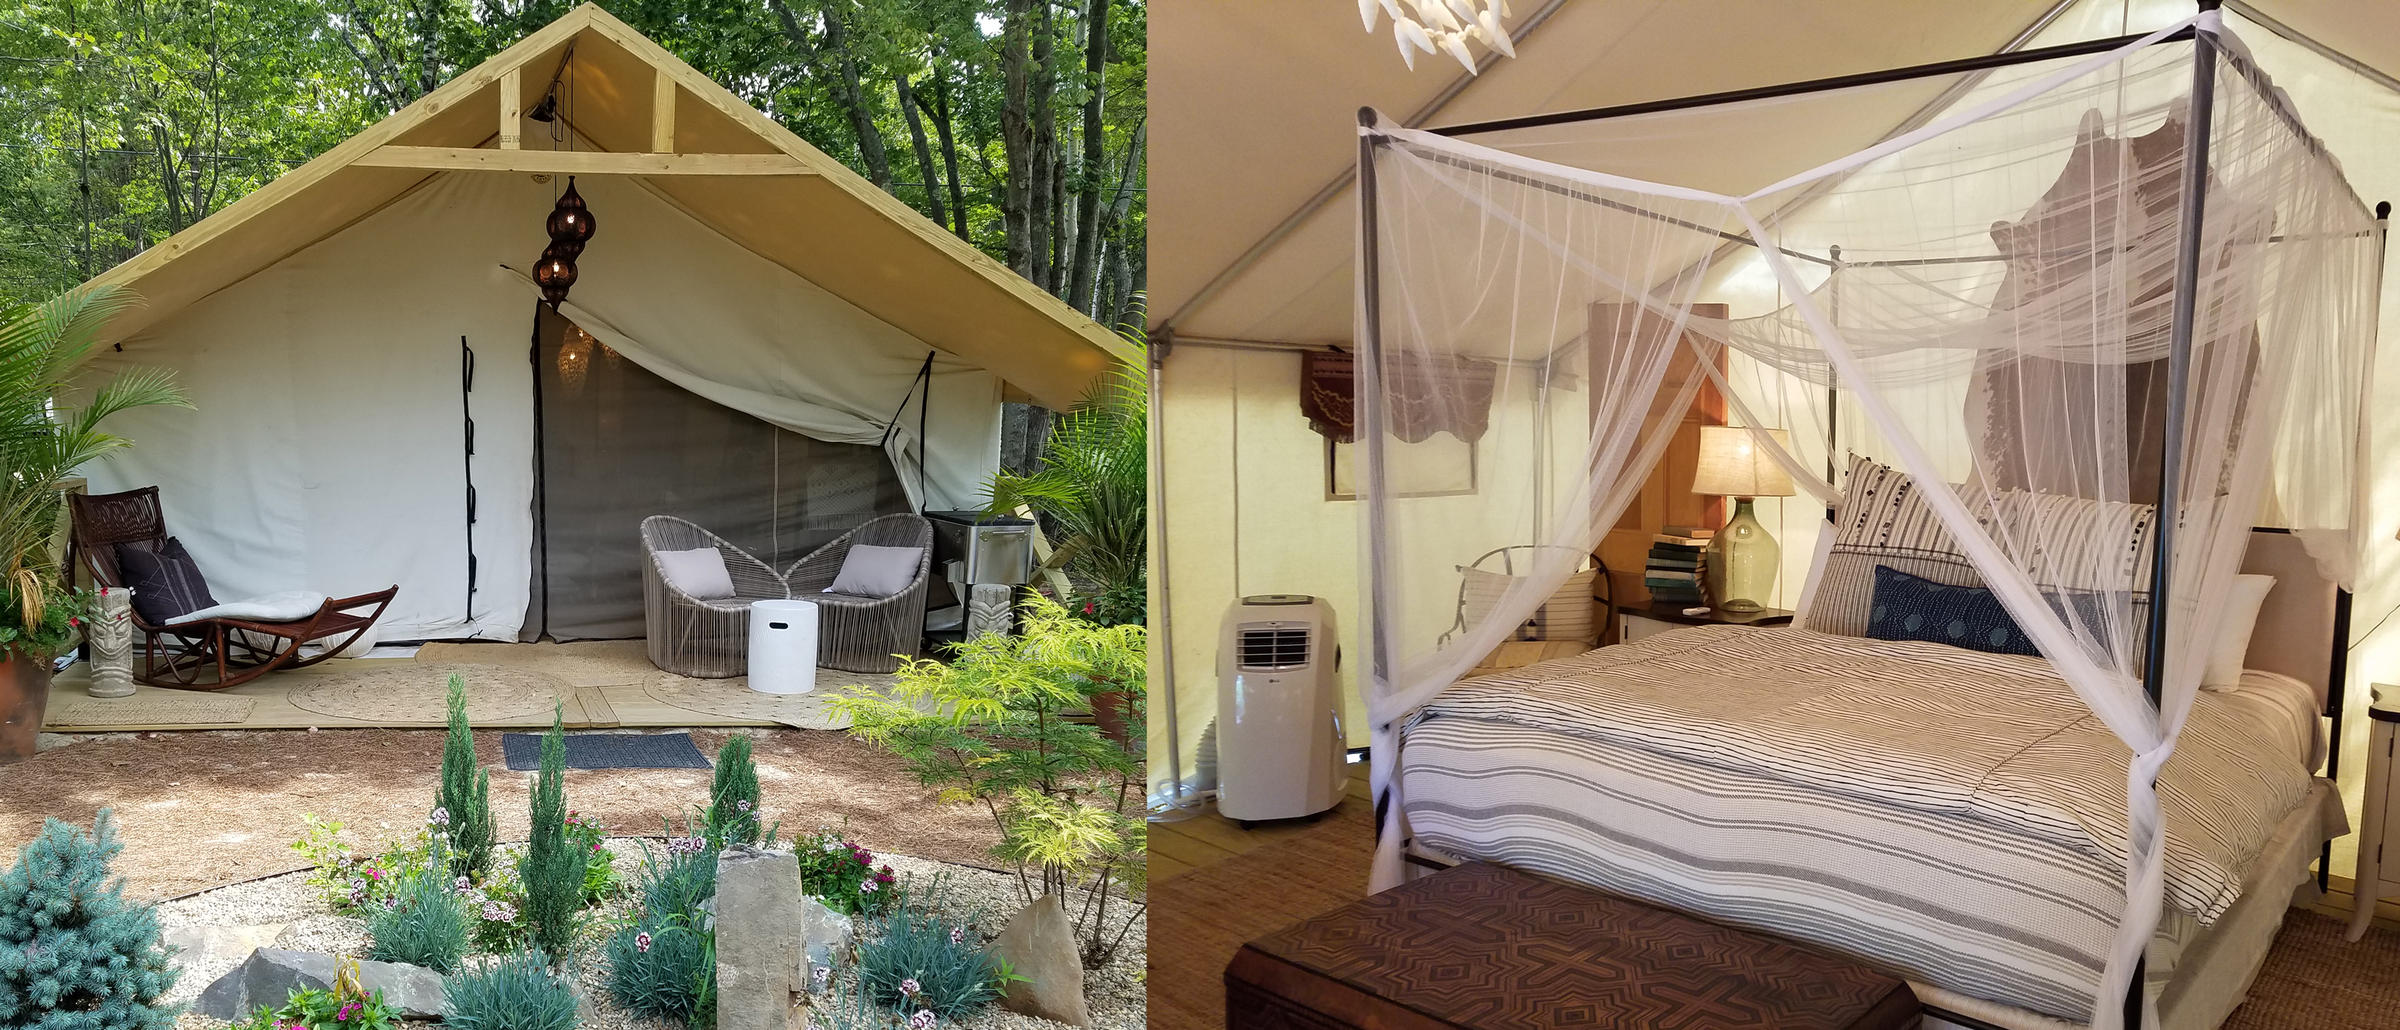 glamping tents at sandy pines campground in kennebunkport